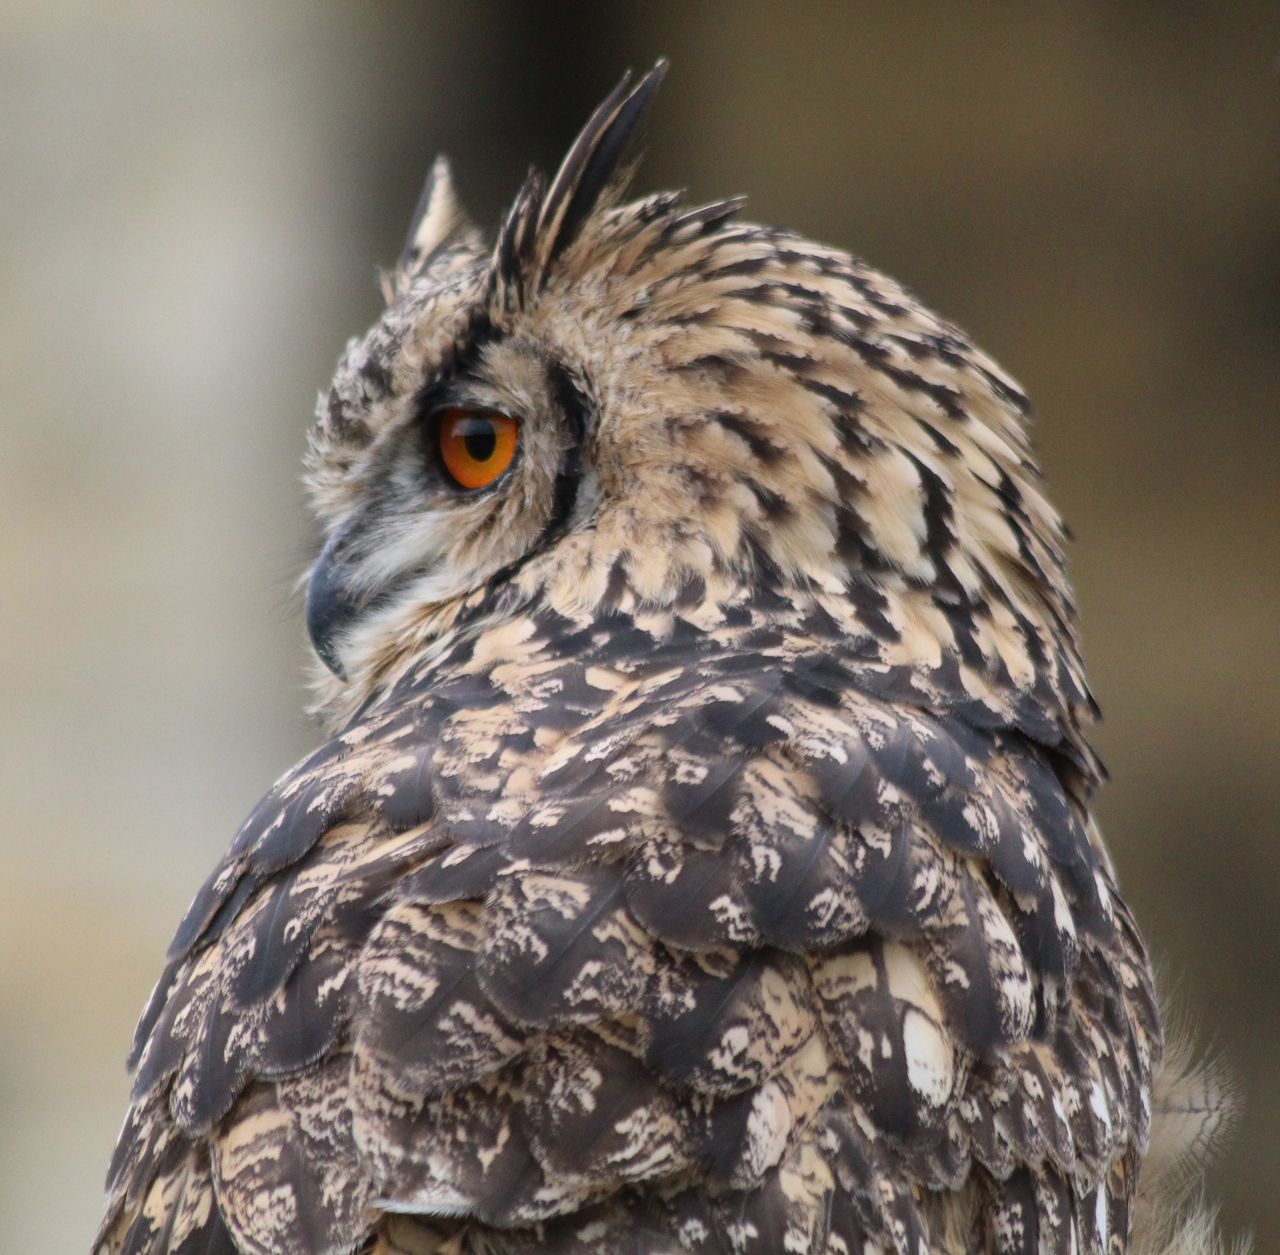 bird, one animal, animals in the wild, animal themes, animal wildlife, bird of prey, focus on foreground, beak, close-up, feather, no people, outdoors, day, nature, portrait, owl, perching